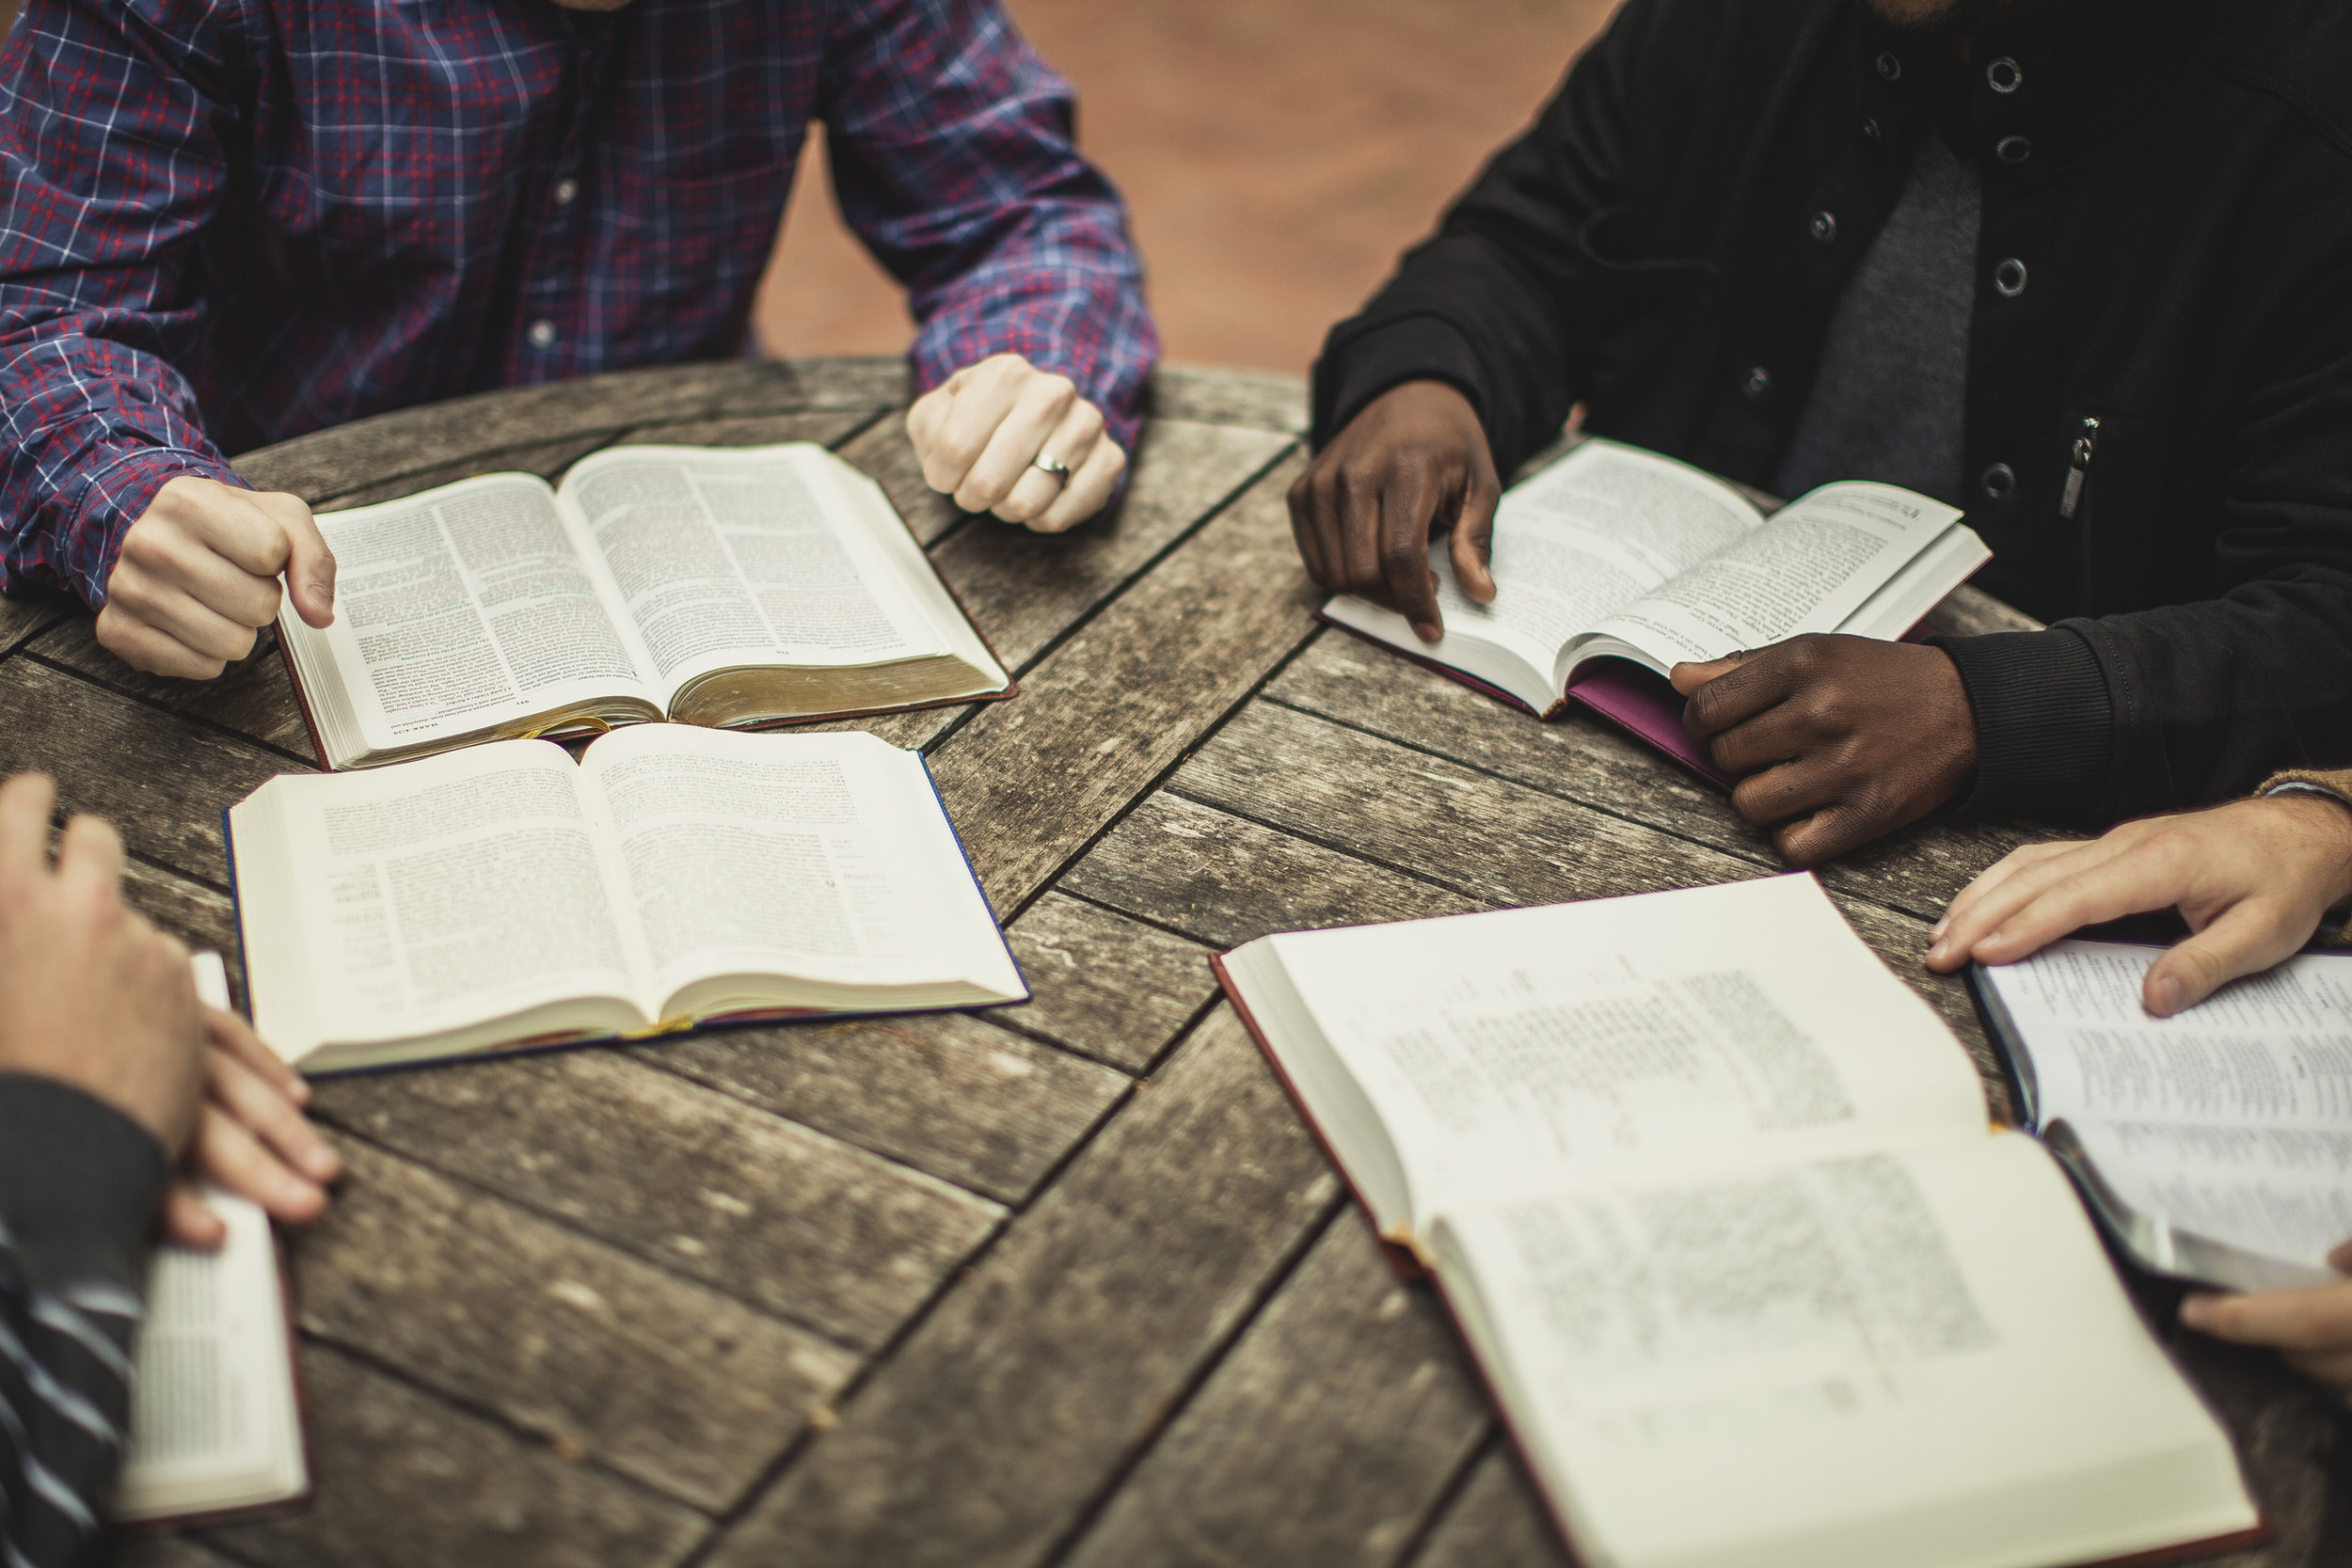 Bible Study - We have Bible study every Wednesday night at 5 and 6:30 pm.